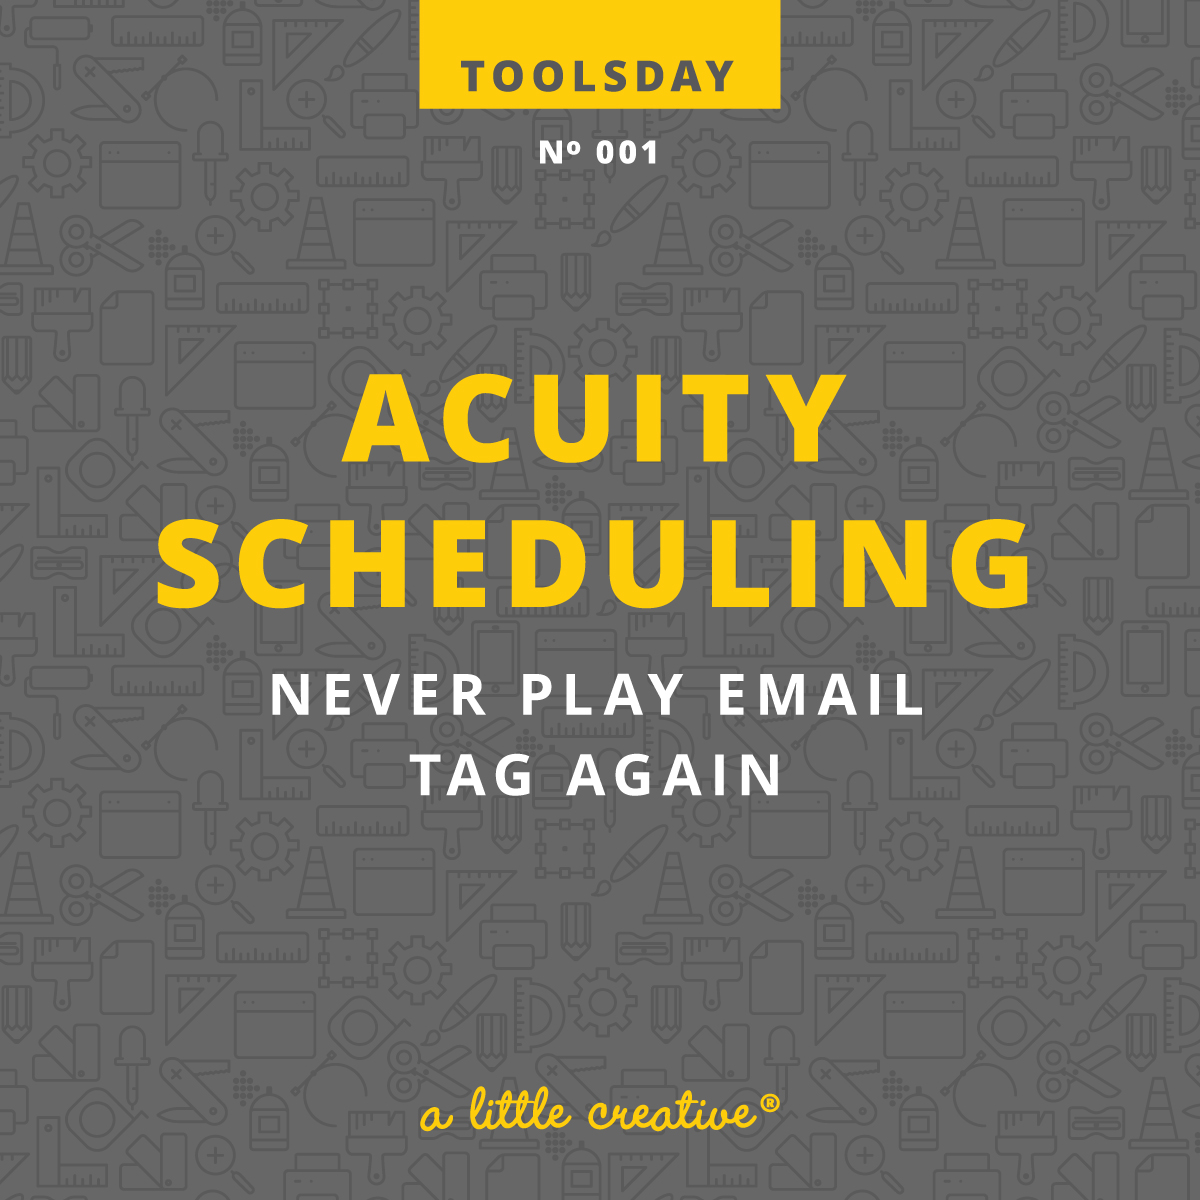 acuity scheduling review / toolsday - a little creative